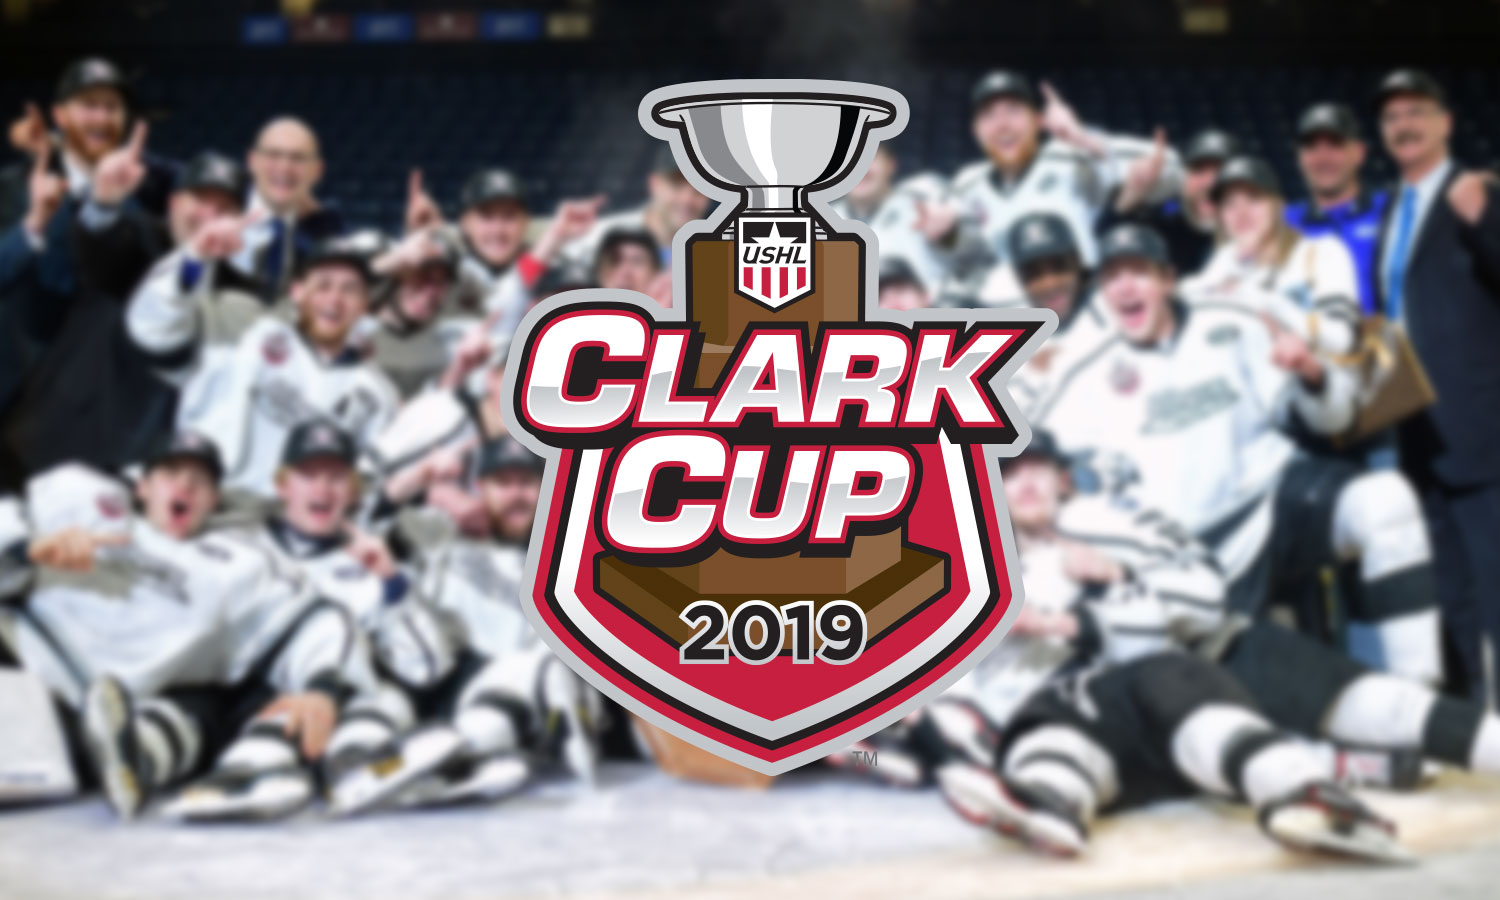 2019 Clark Cup Conference Semifinals Dates Announced